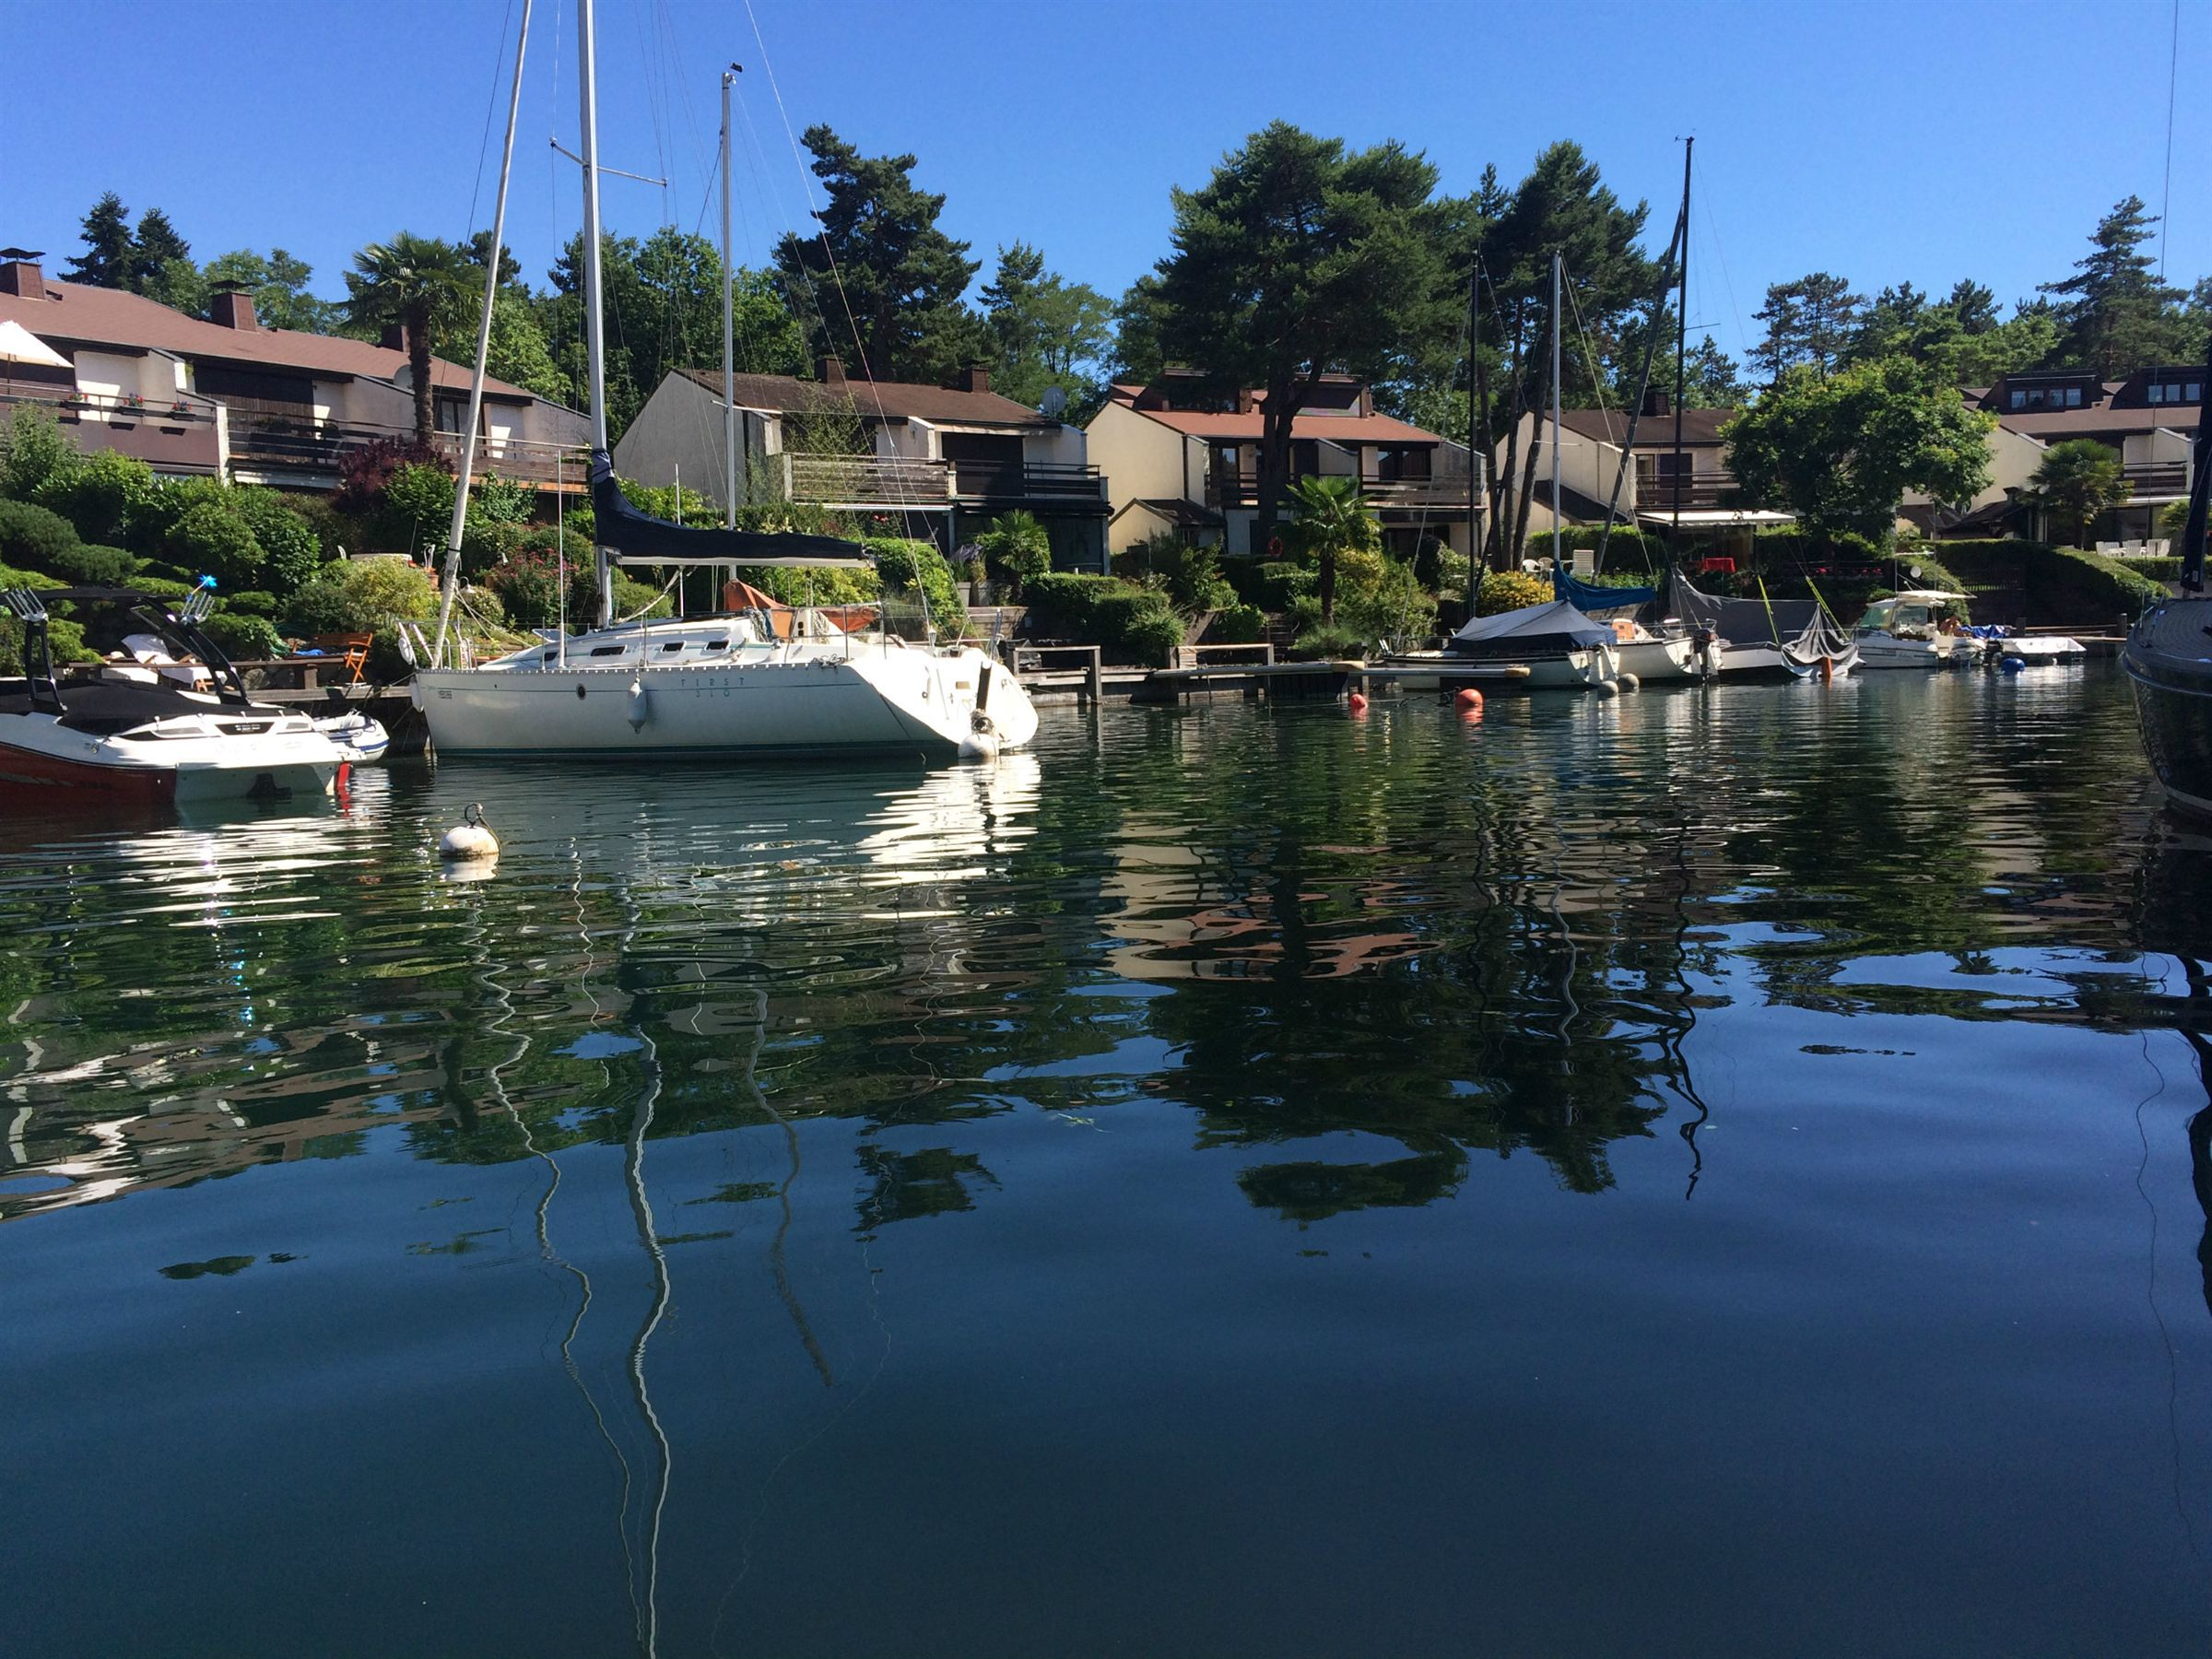 Single Family Home for Sale at PORT RIPAILLE NEAR EVIAN VILLA WATERFRONT LAKE Thonon Les Bains, Haute Savoie 74200 France